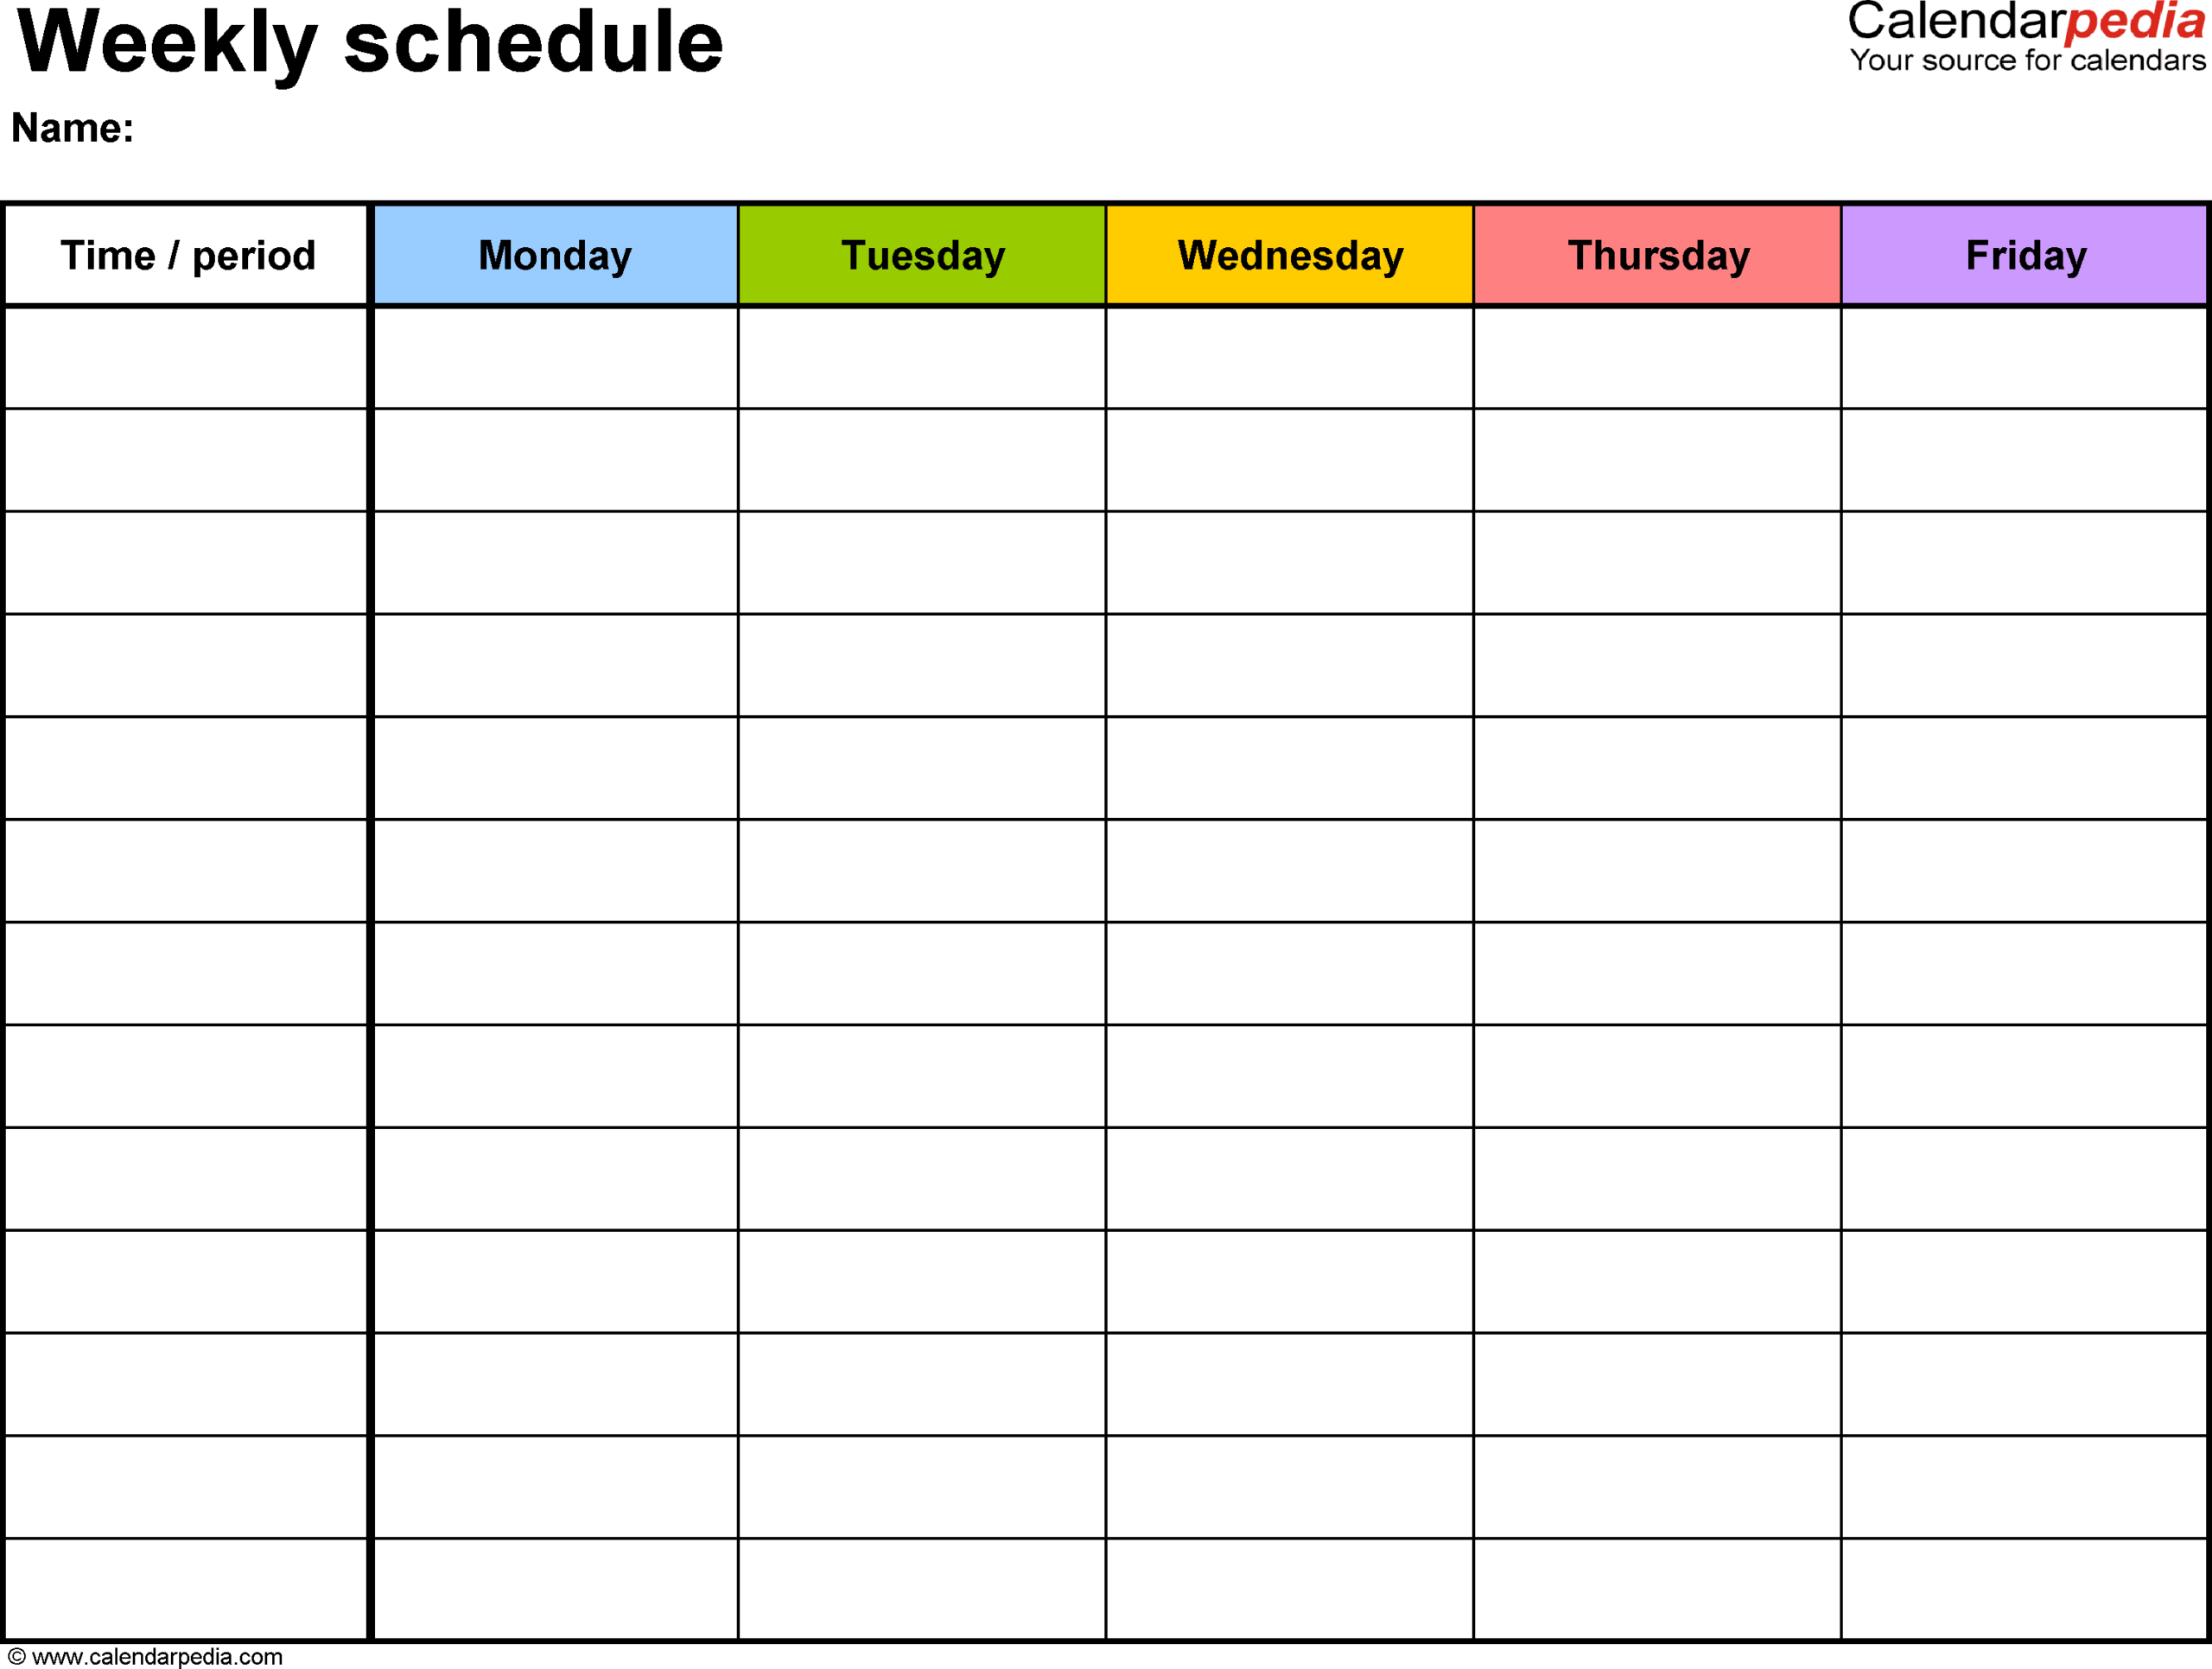 Free Weekly Schedule Templates For Word - 18 Templates in Blank Weekly Planner Template